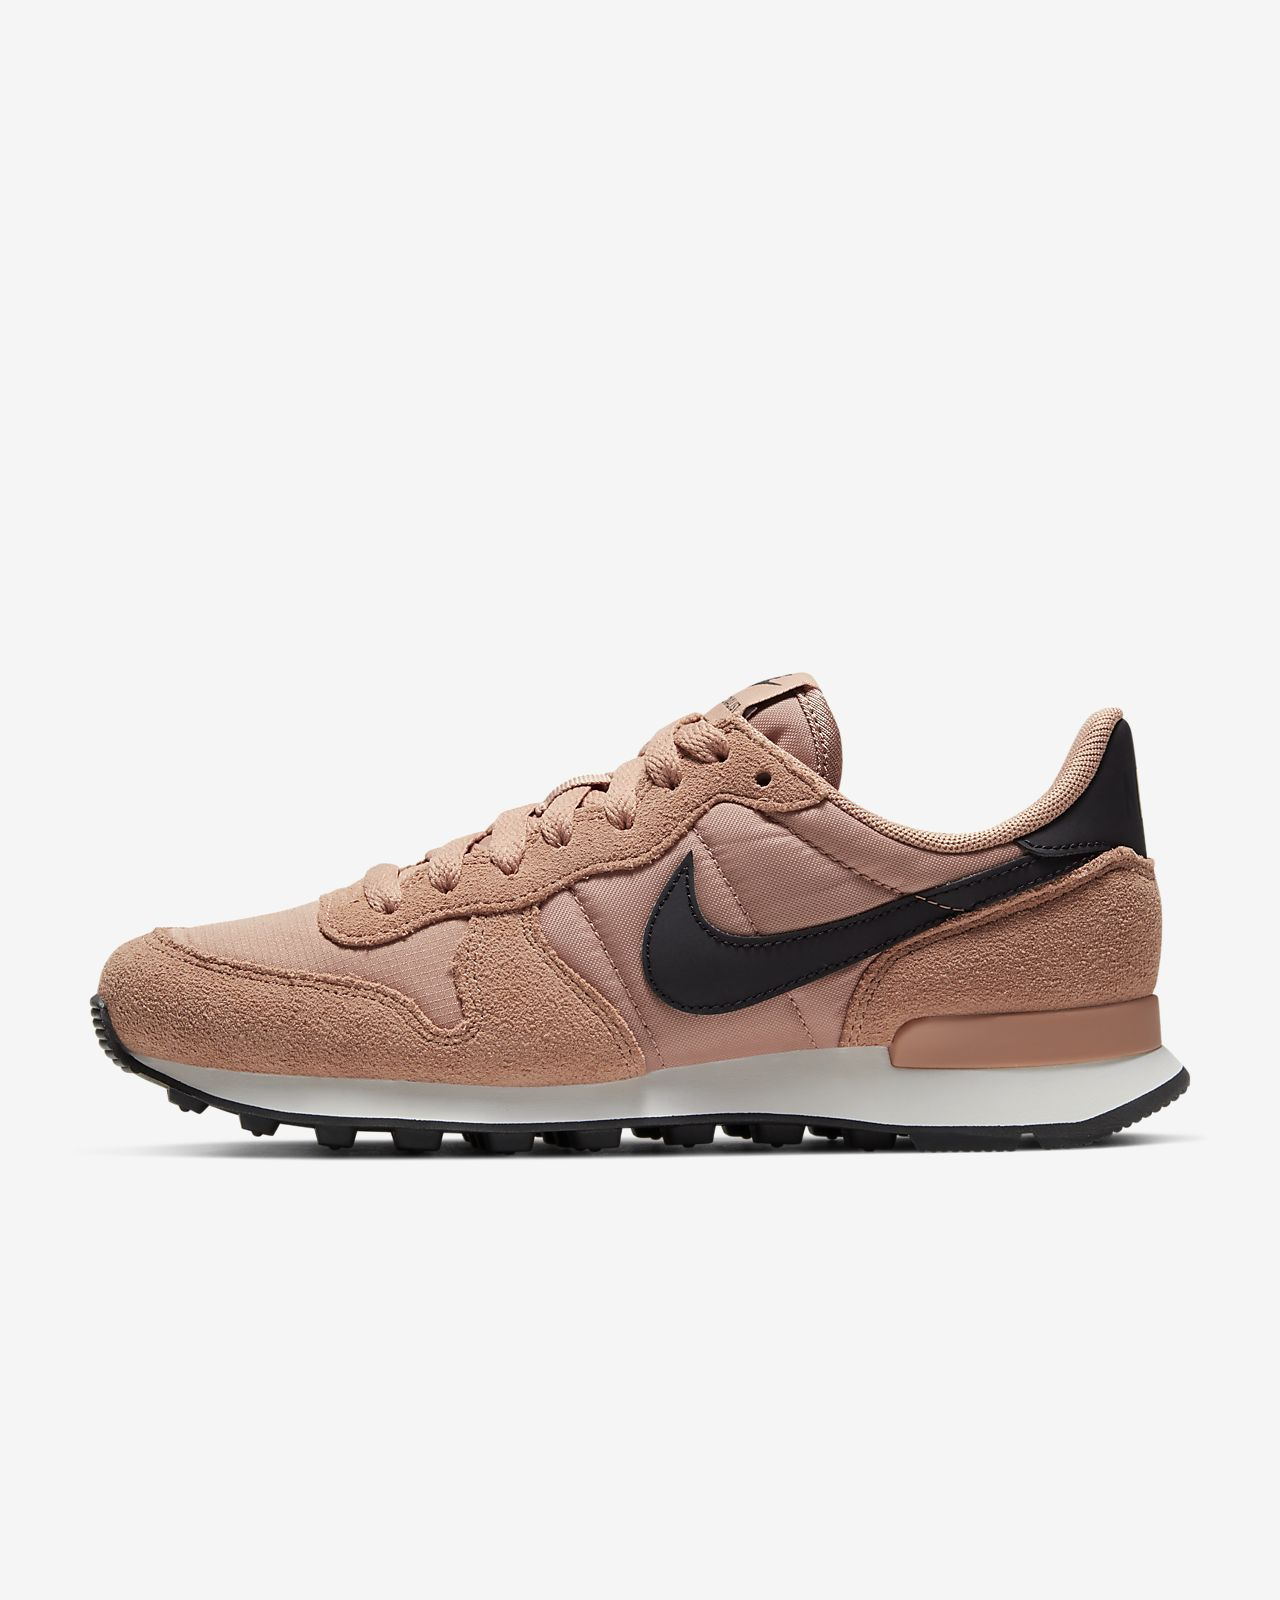 brand new 71287 fb661 Low Resolution Chaussure Nike Internationalist pour Femme Chaussure Nike  Internationalist pour Femme